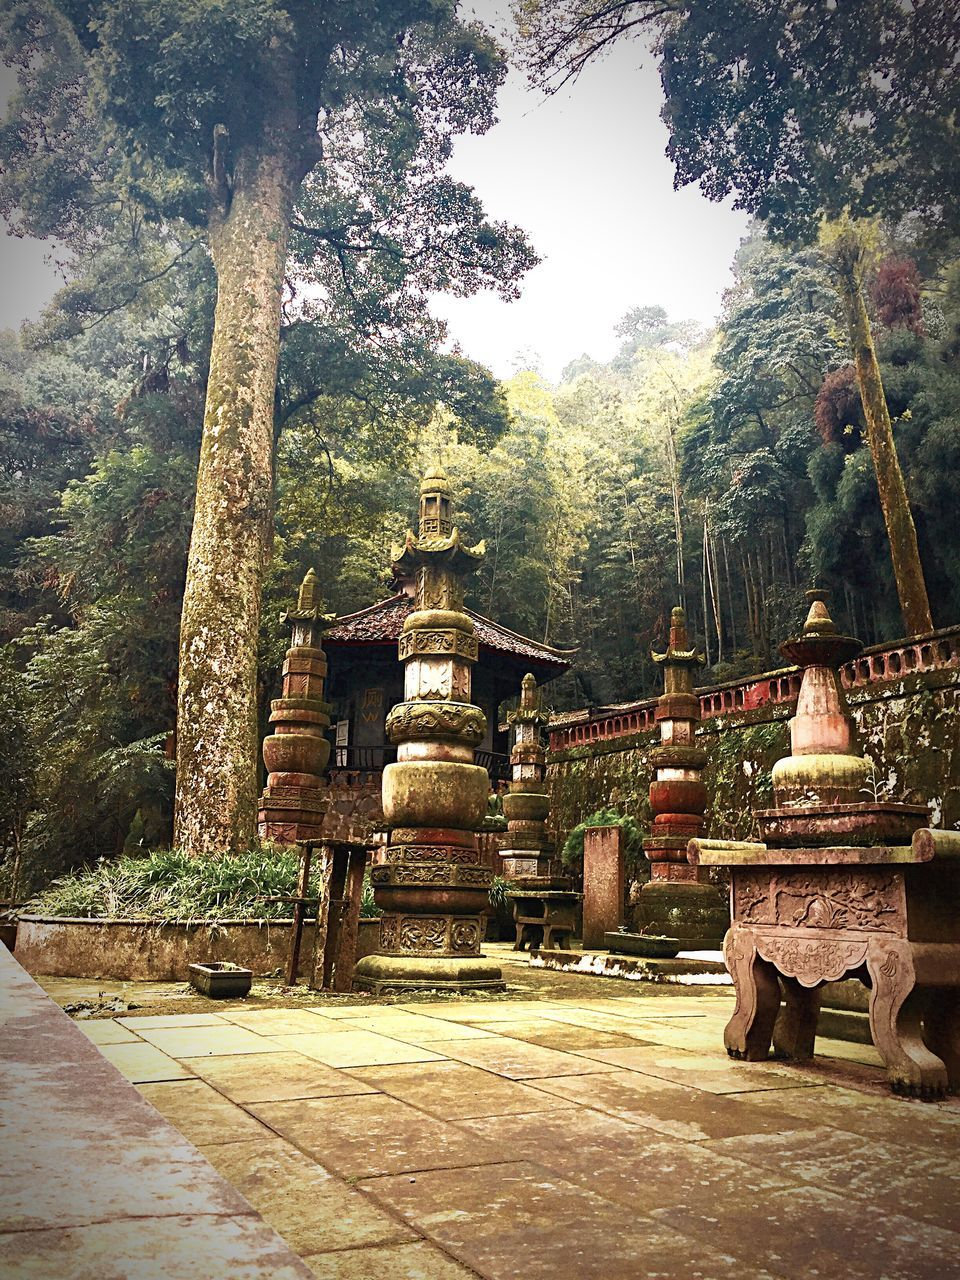 religion, tree, spirituality, place of worship, travel destinations, built structure, old ruin, no people, day, architecture, building exterior, beauty in nature, nature, outdoors, ancient civilization